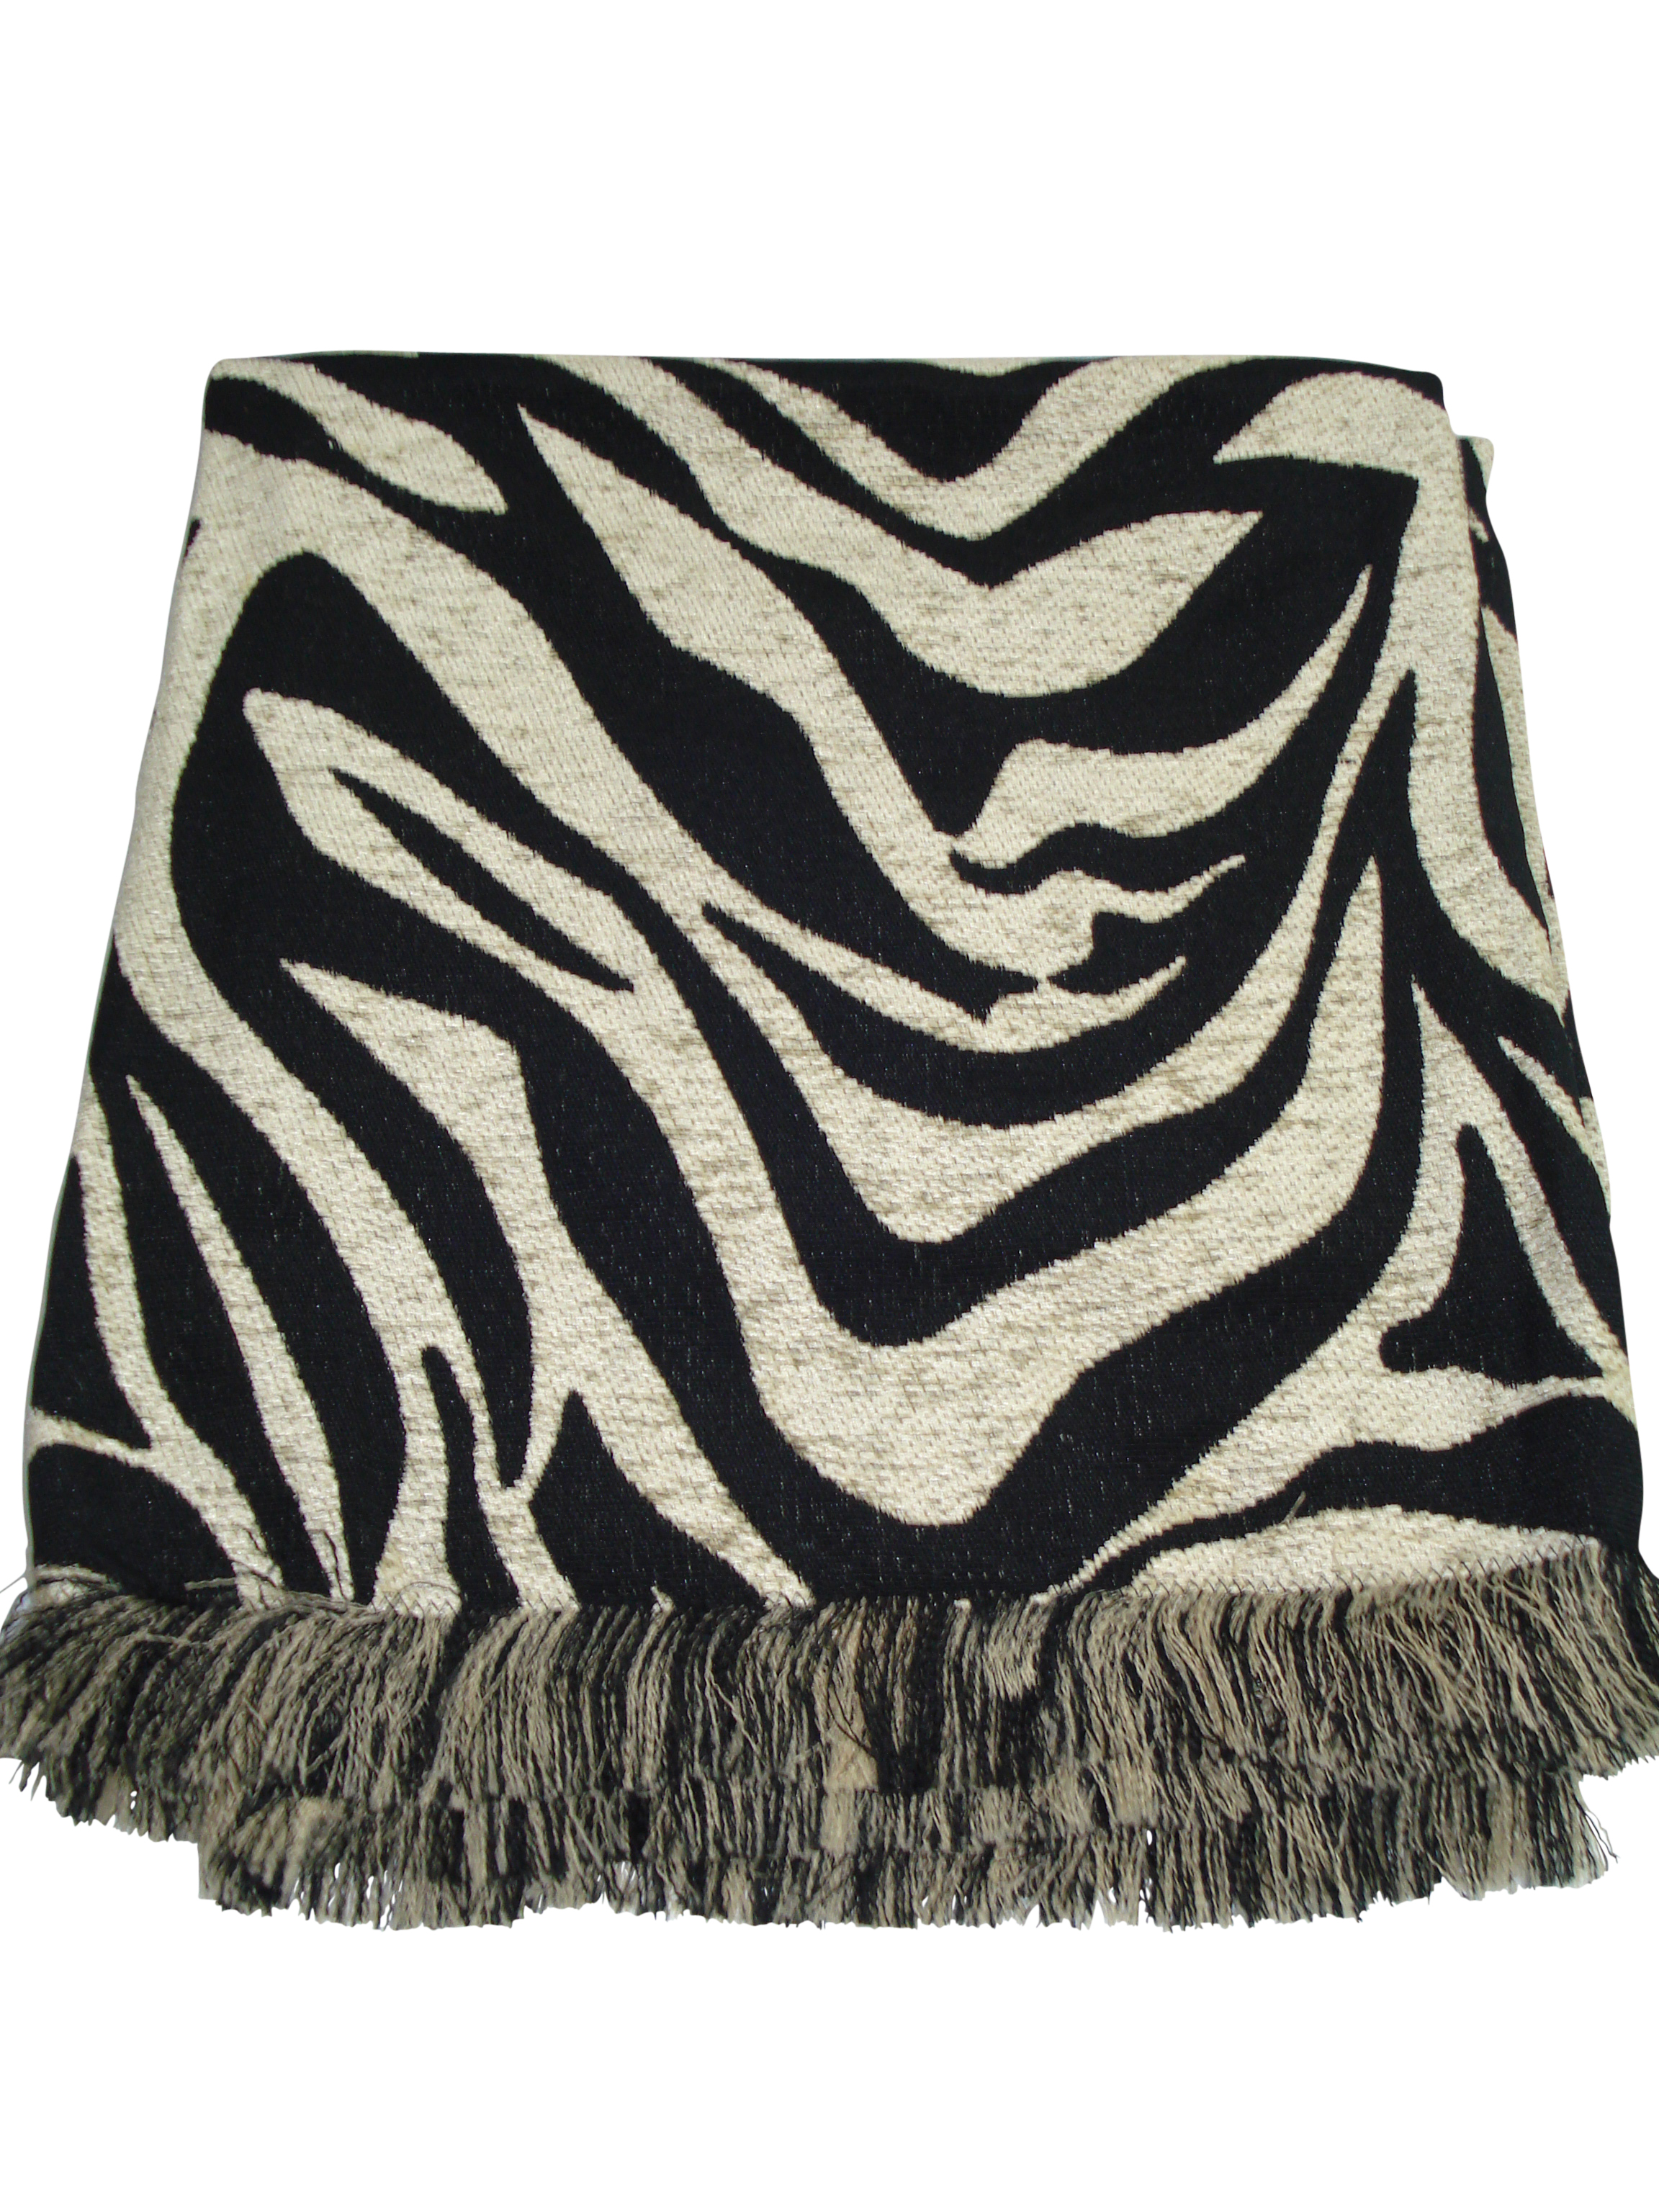 Zebra Ebony Throw